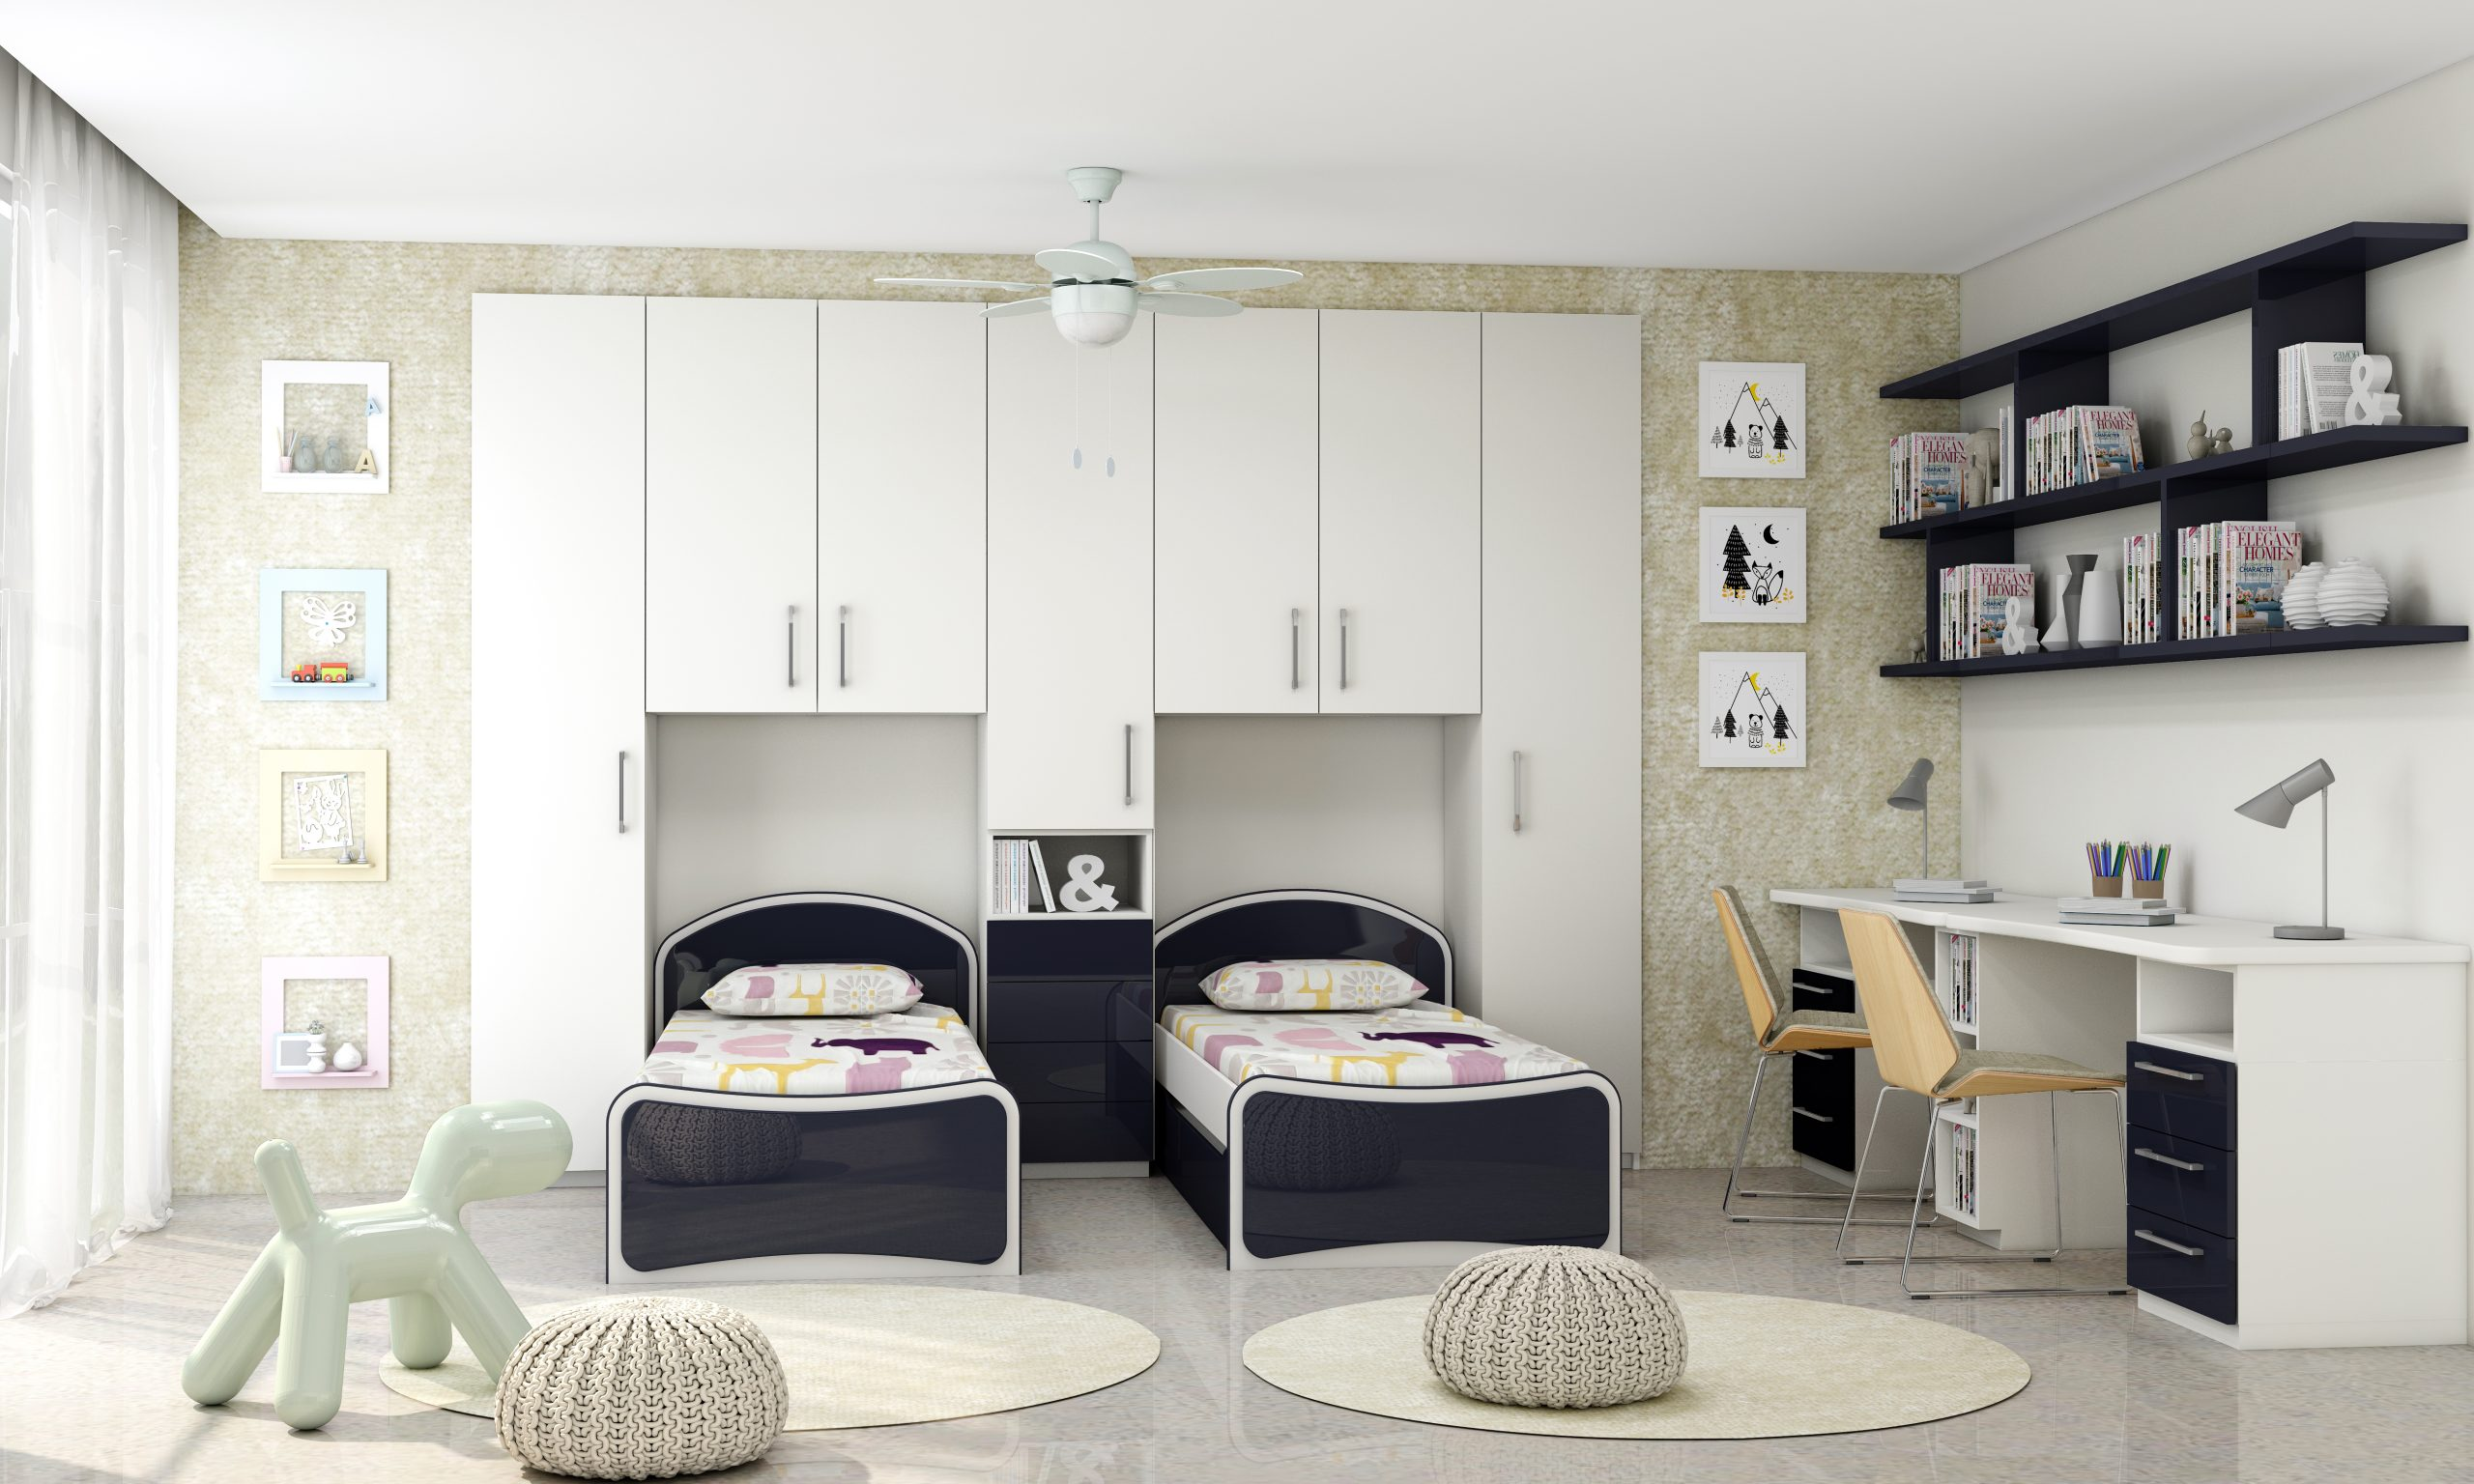 Children Bedroom Fitted Wardrobe Storage With Study and Alcoves in Alpine White and Indigo Blue Finish